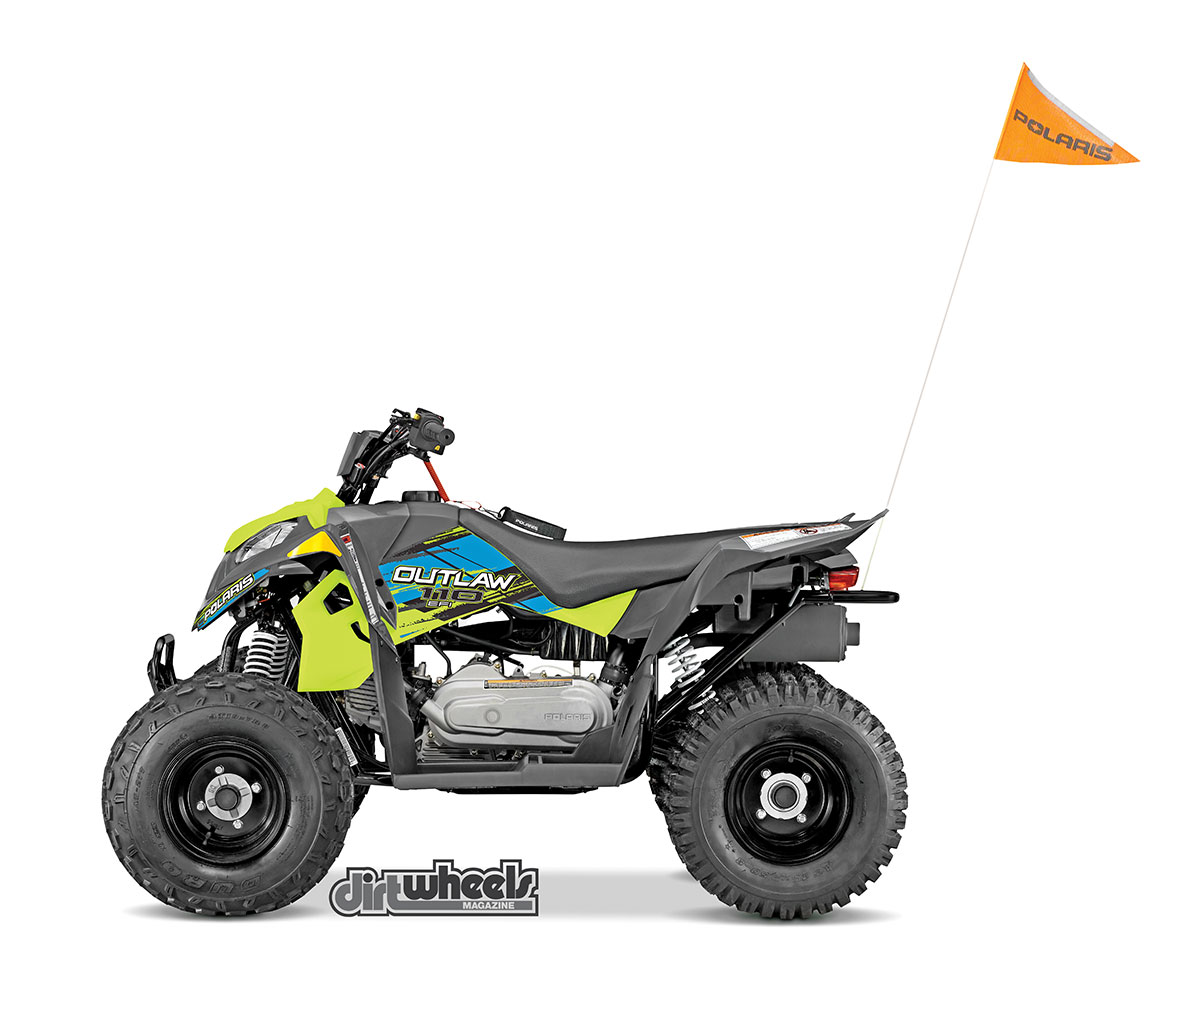 The $3099 EFI Outlaw 110 is a great machine for riders 10 years old and up. It has a speed limiter and new Lime Squeeze and Pink Power color schemes. It's fully automatic with forward, neutral and reverse.